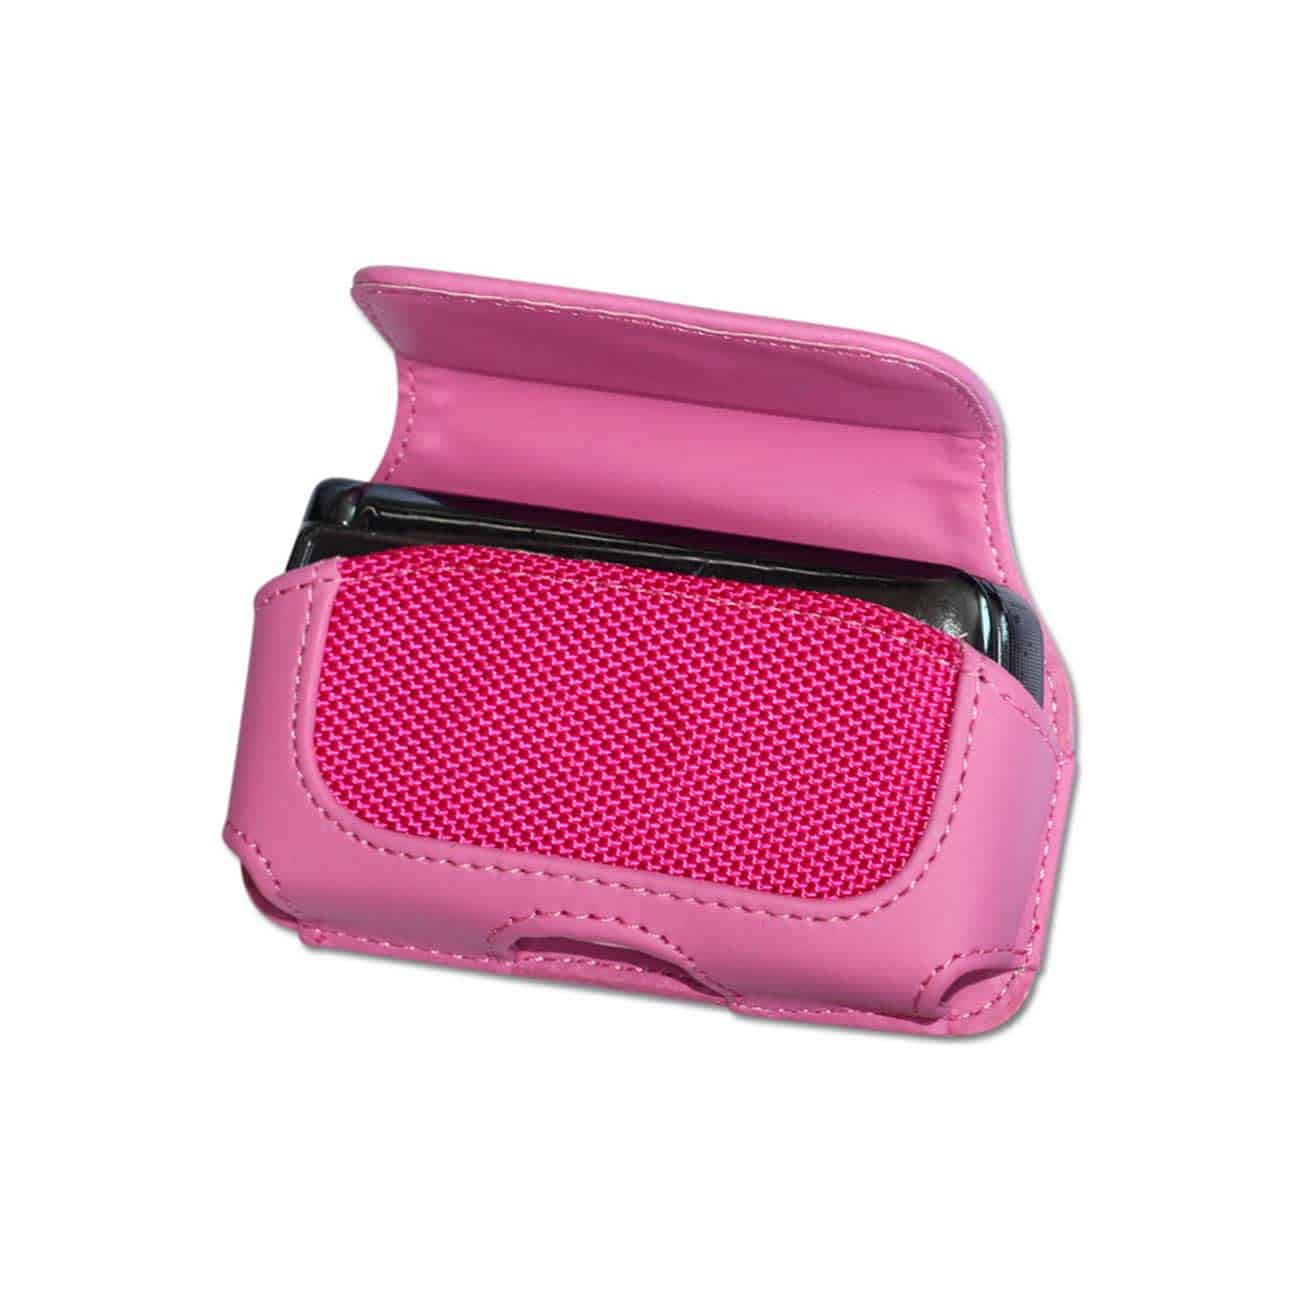 HORIZONTAL POUCH HP11A MOTOROLA V9 HOT PINK 4X0.5X2.1 INCHES